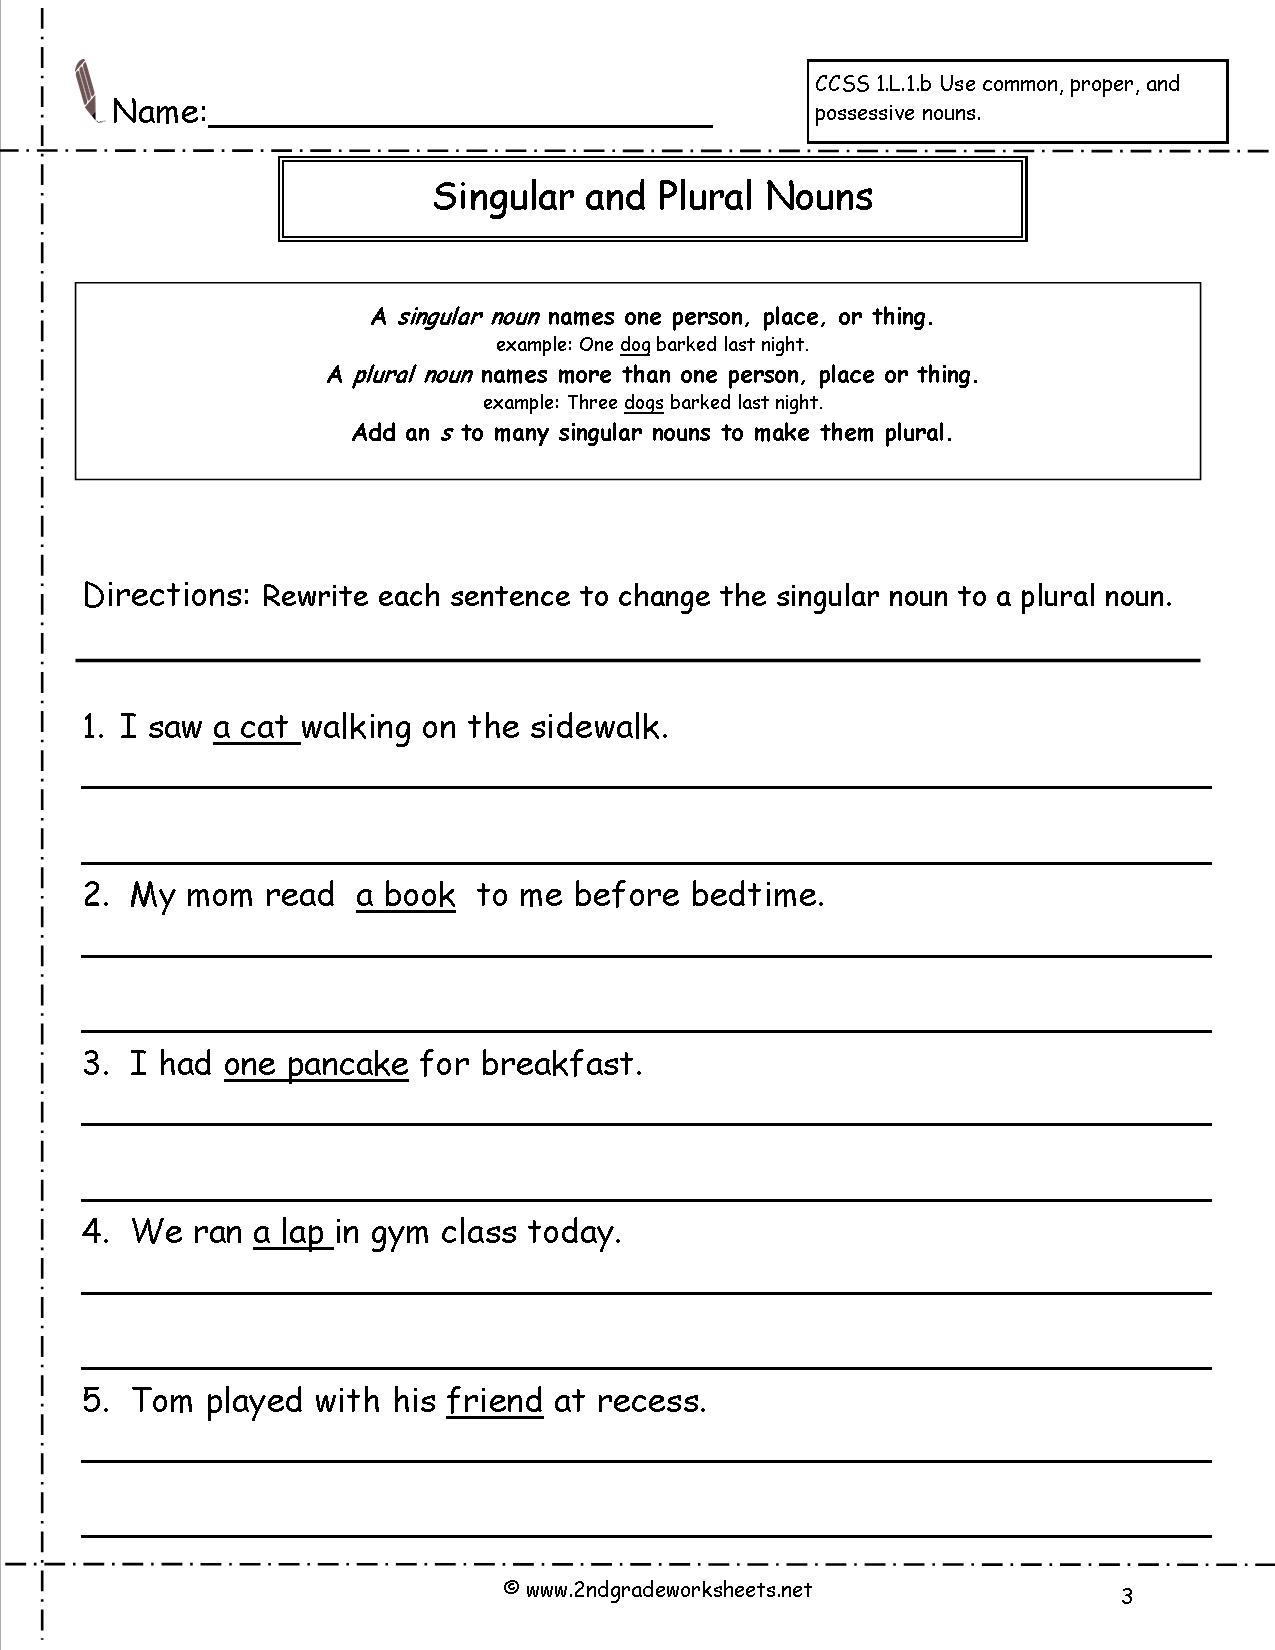 14 Best Images Of Singular Plural Nouns Worksheets